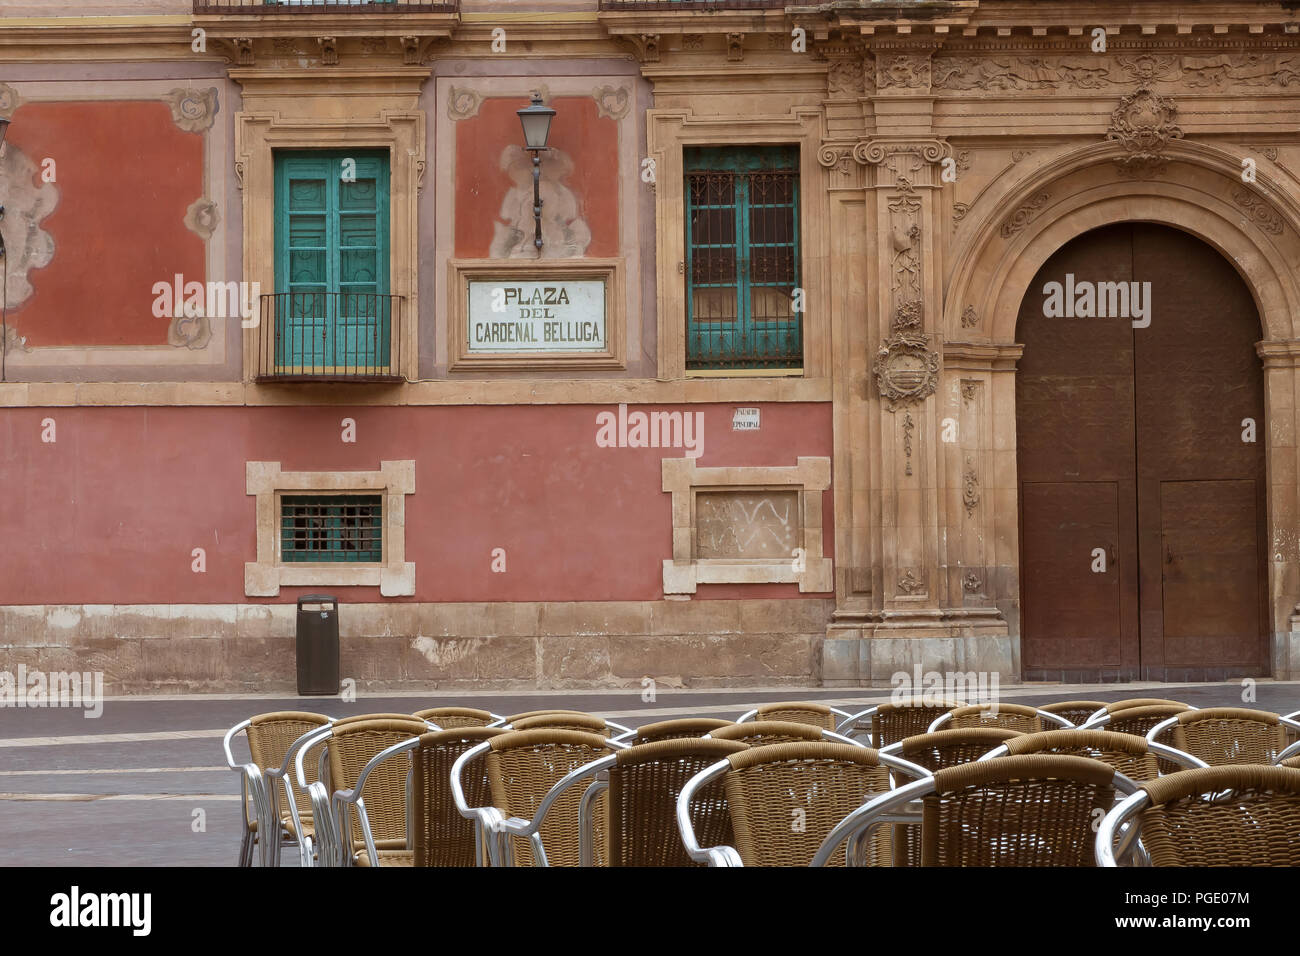 August 2017 - cafe chairs on Plaza del Cardenal Belluga, historic square in the center of Murcia, Spain - Stock Image